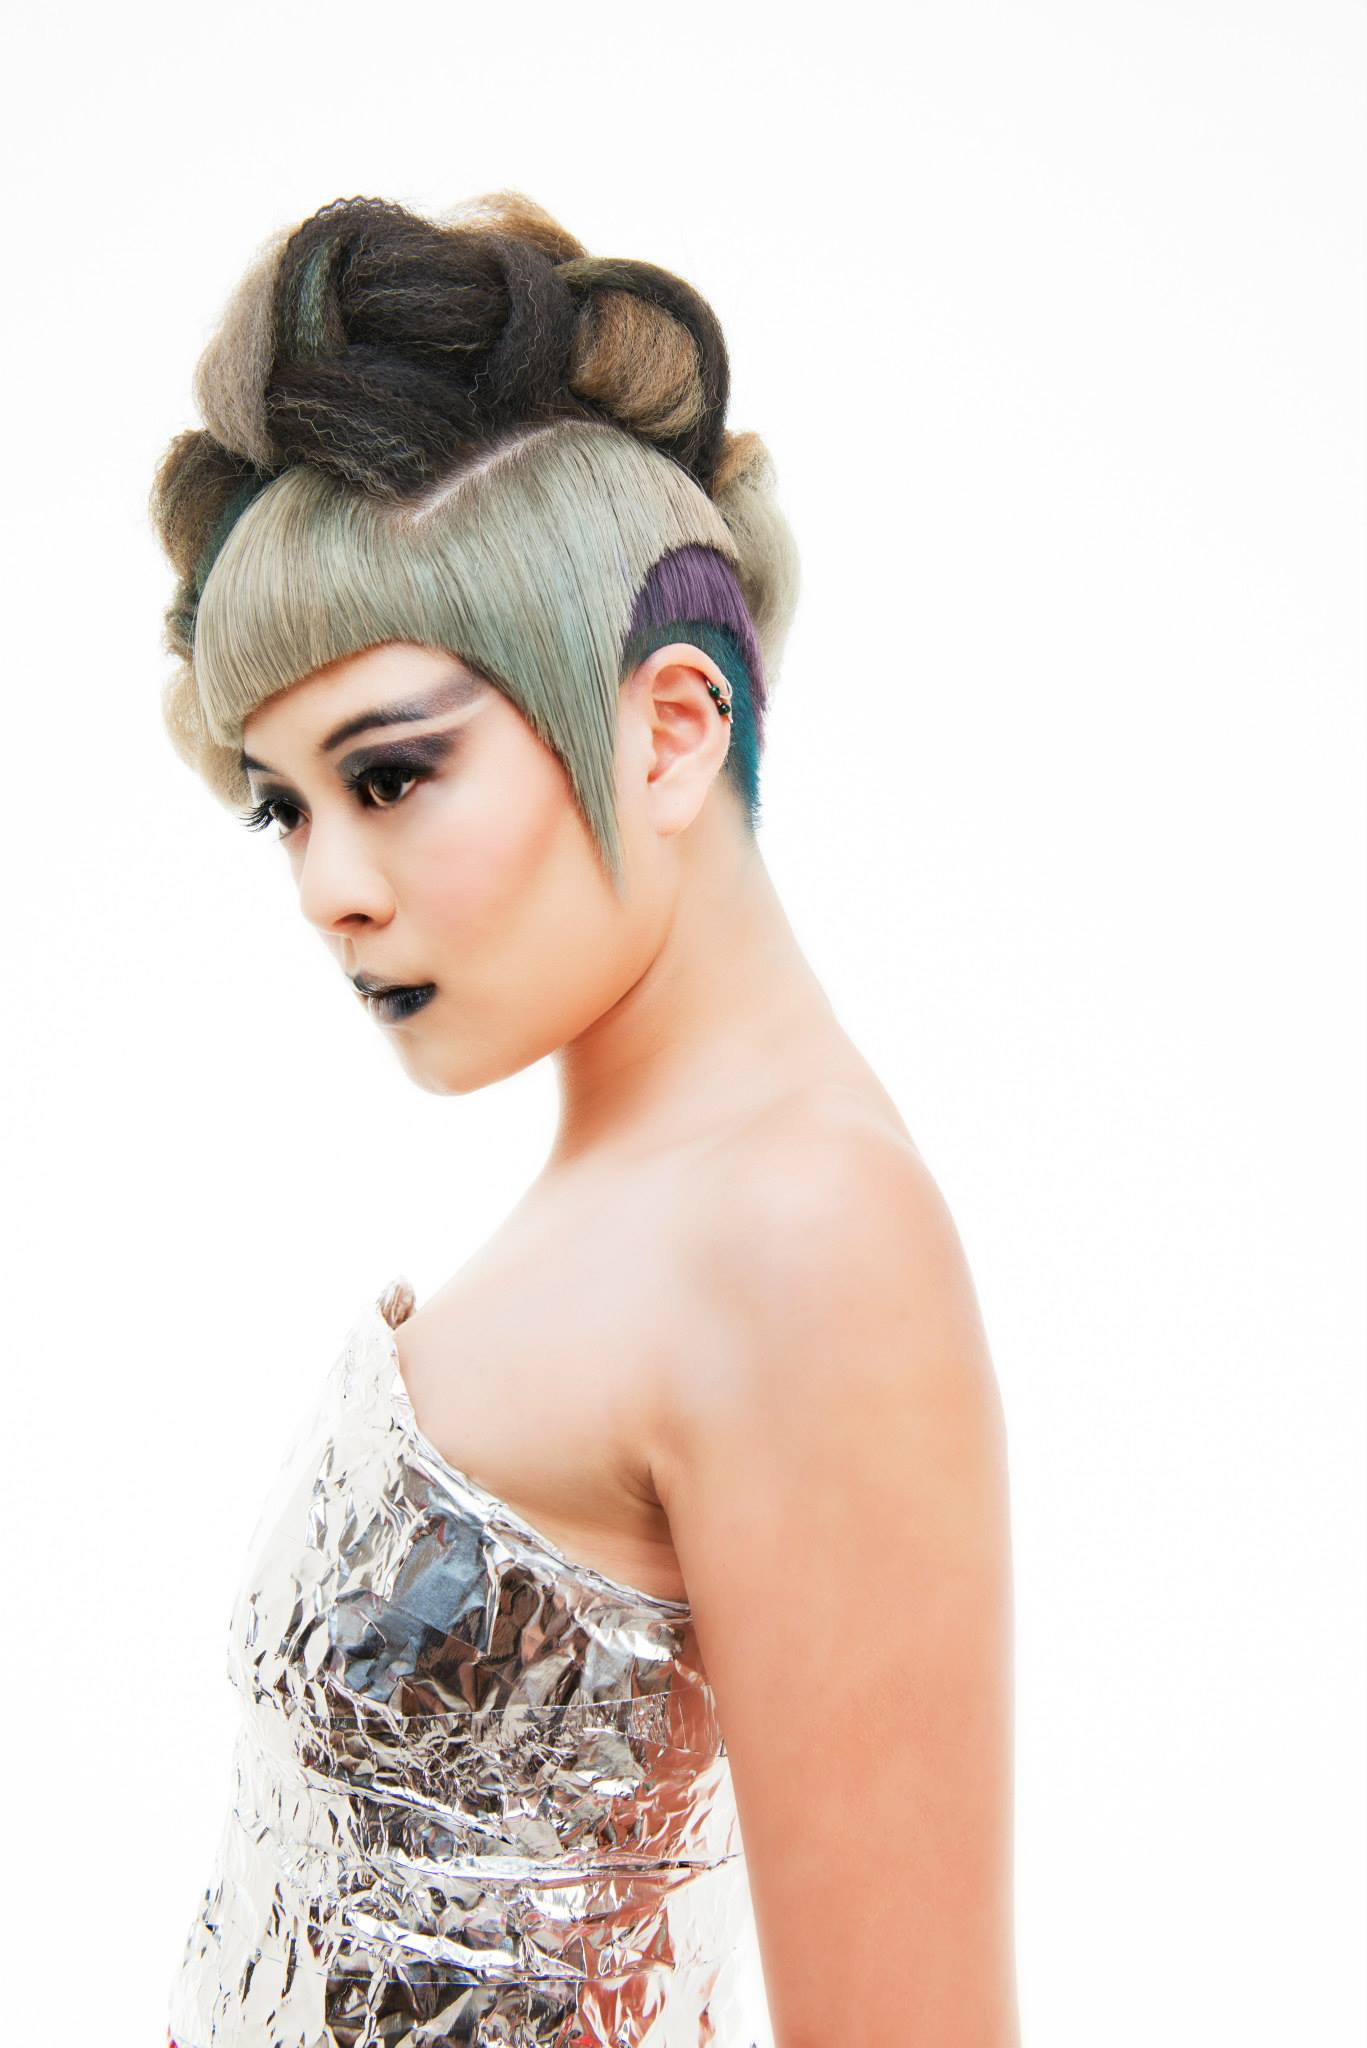 Model: Vivian Ly    Hair: Roz Corpuz | Umbrella Salon    Make-Up:   Gizelle Morales   Photography: Khiem Hoang